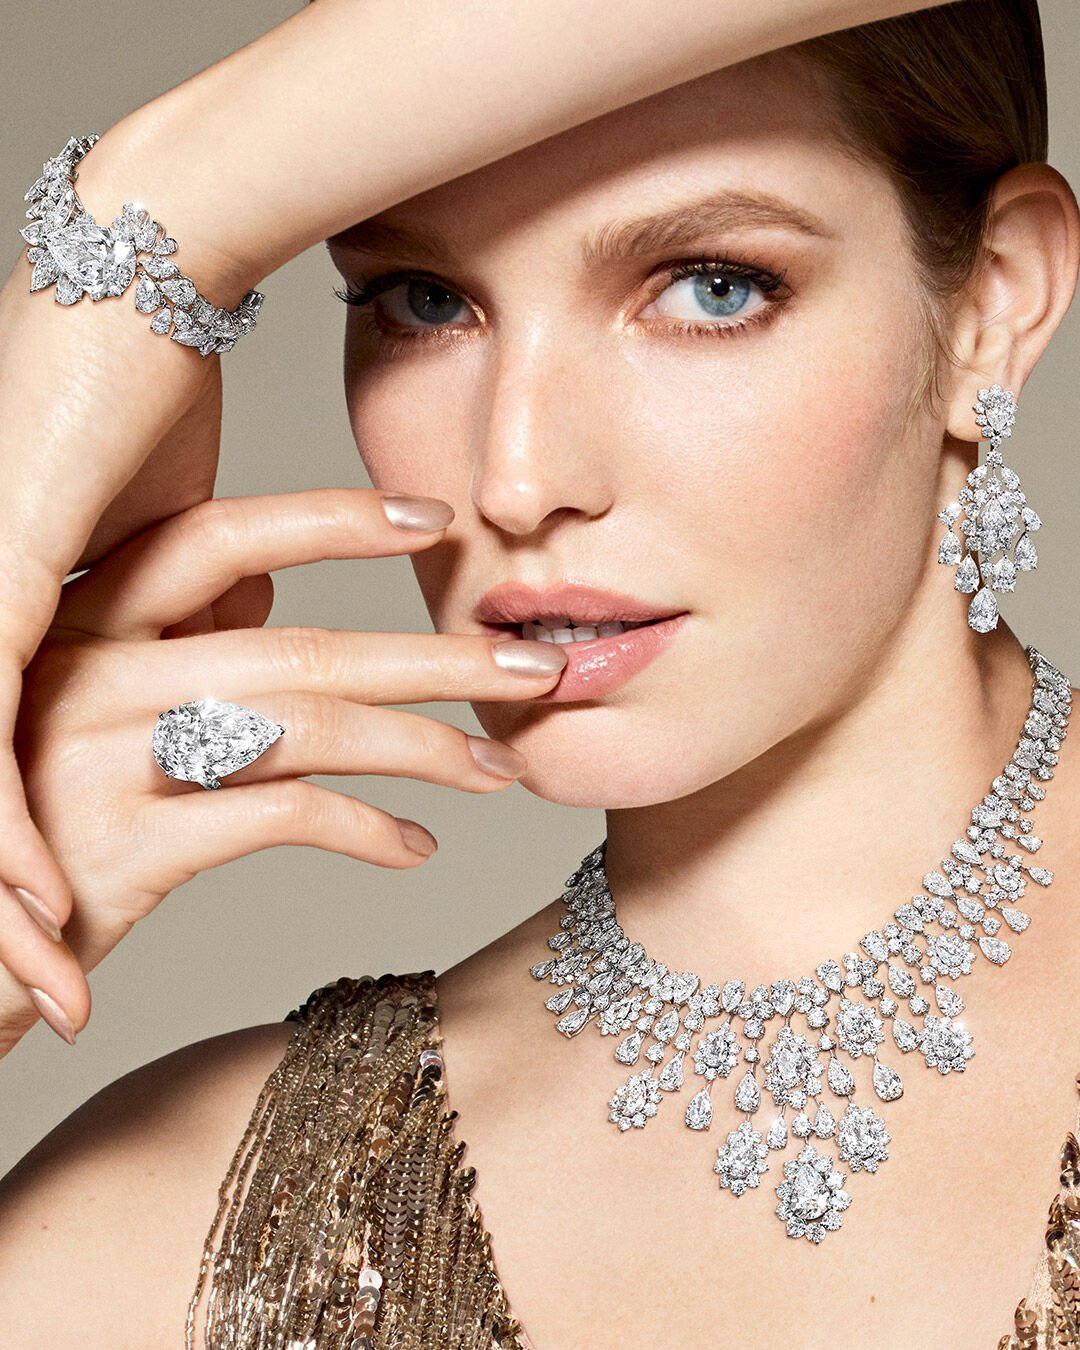 Model wears Graff high jewellery